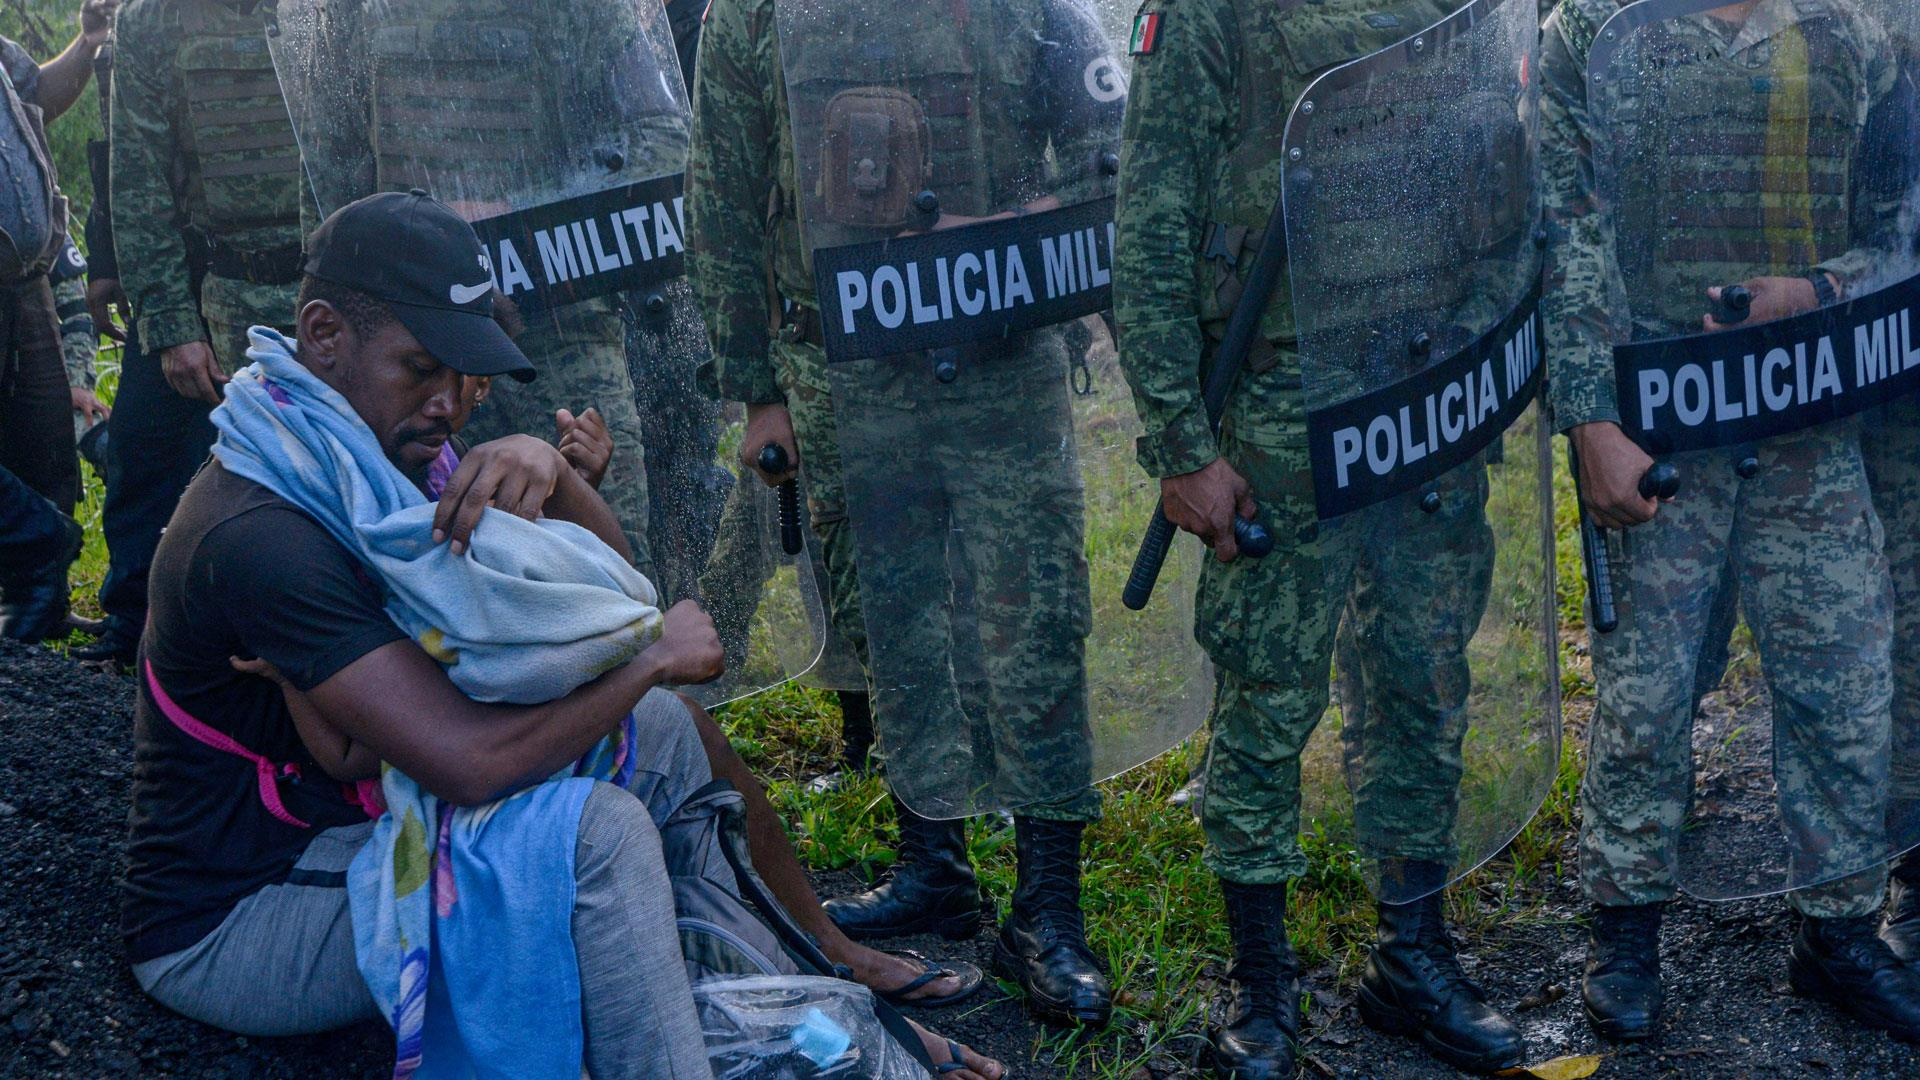 Migrants in Mexico blocked from traveling further north